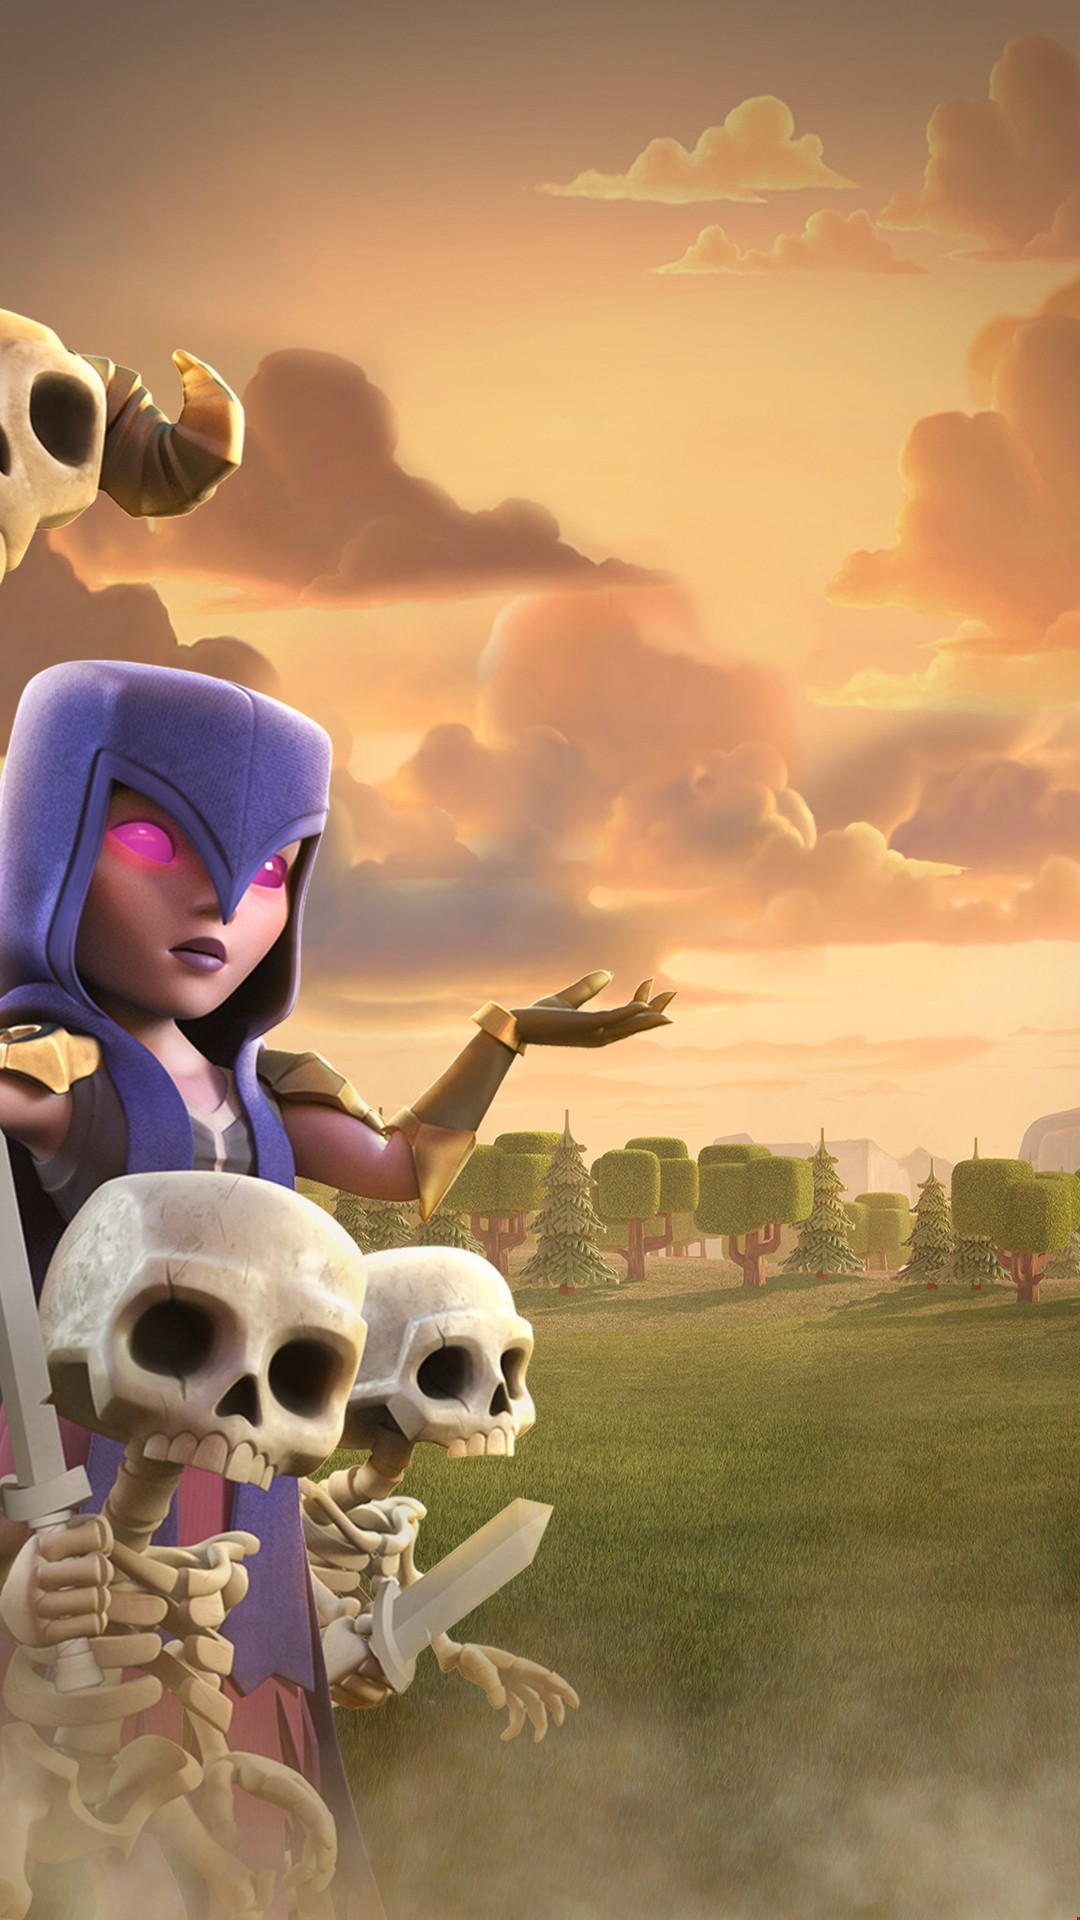 Top 5 Game Wallpapers Are The Most Popular Clash Of Clans